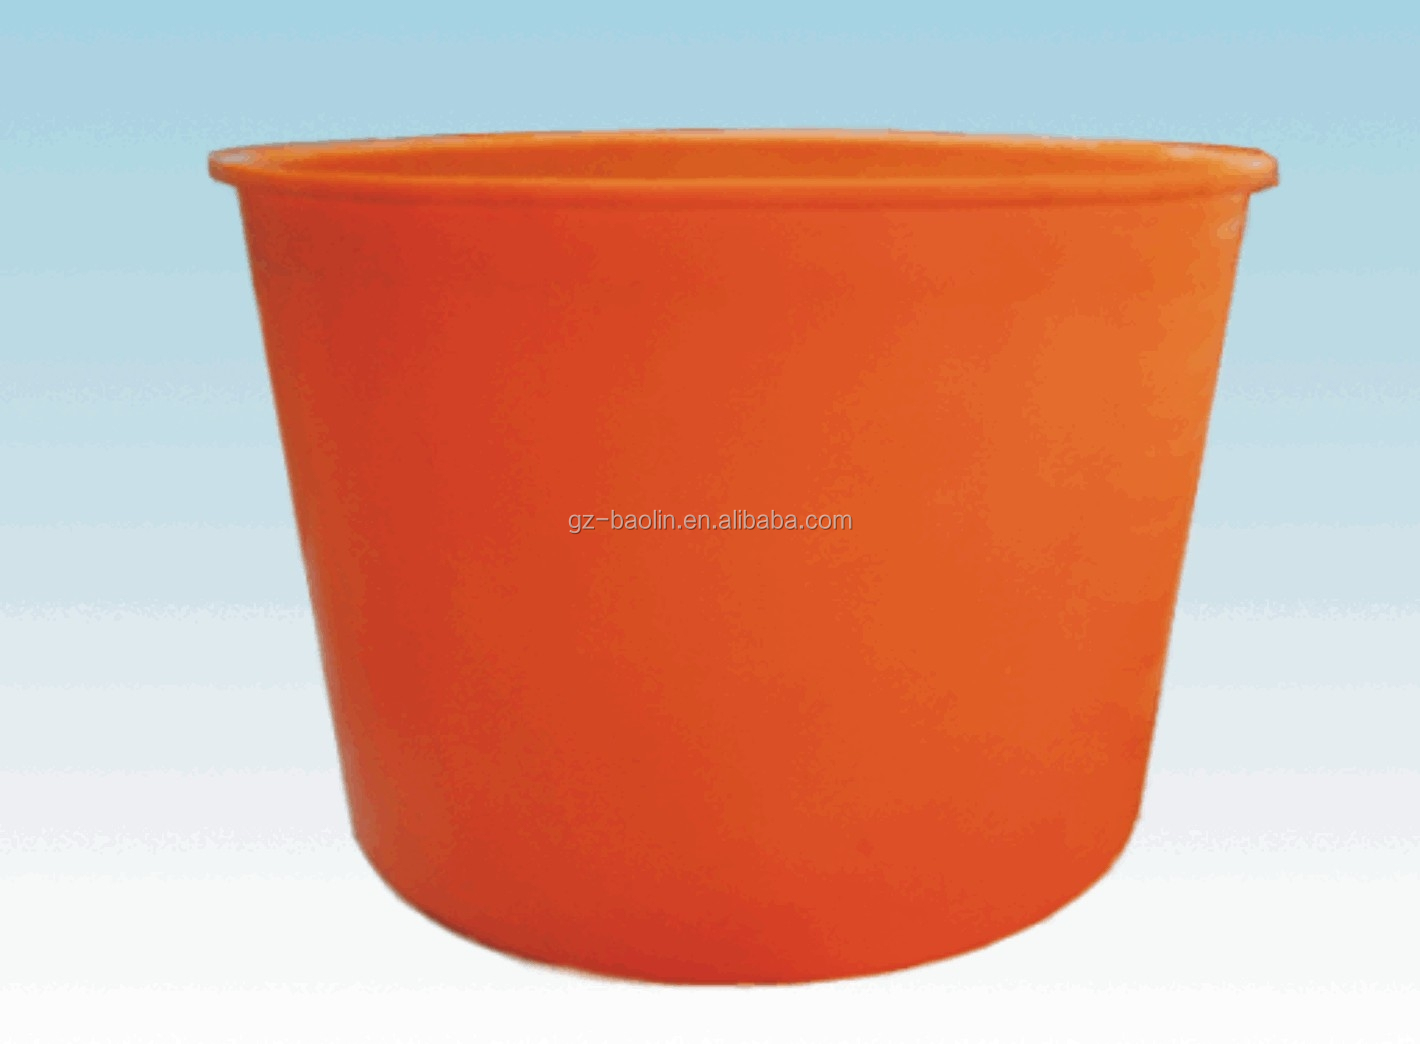 Guangzhou used plastic drums for sale